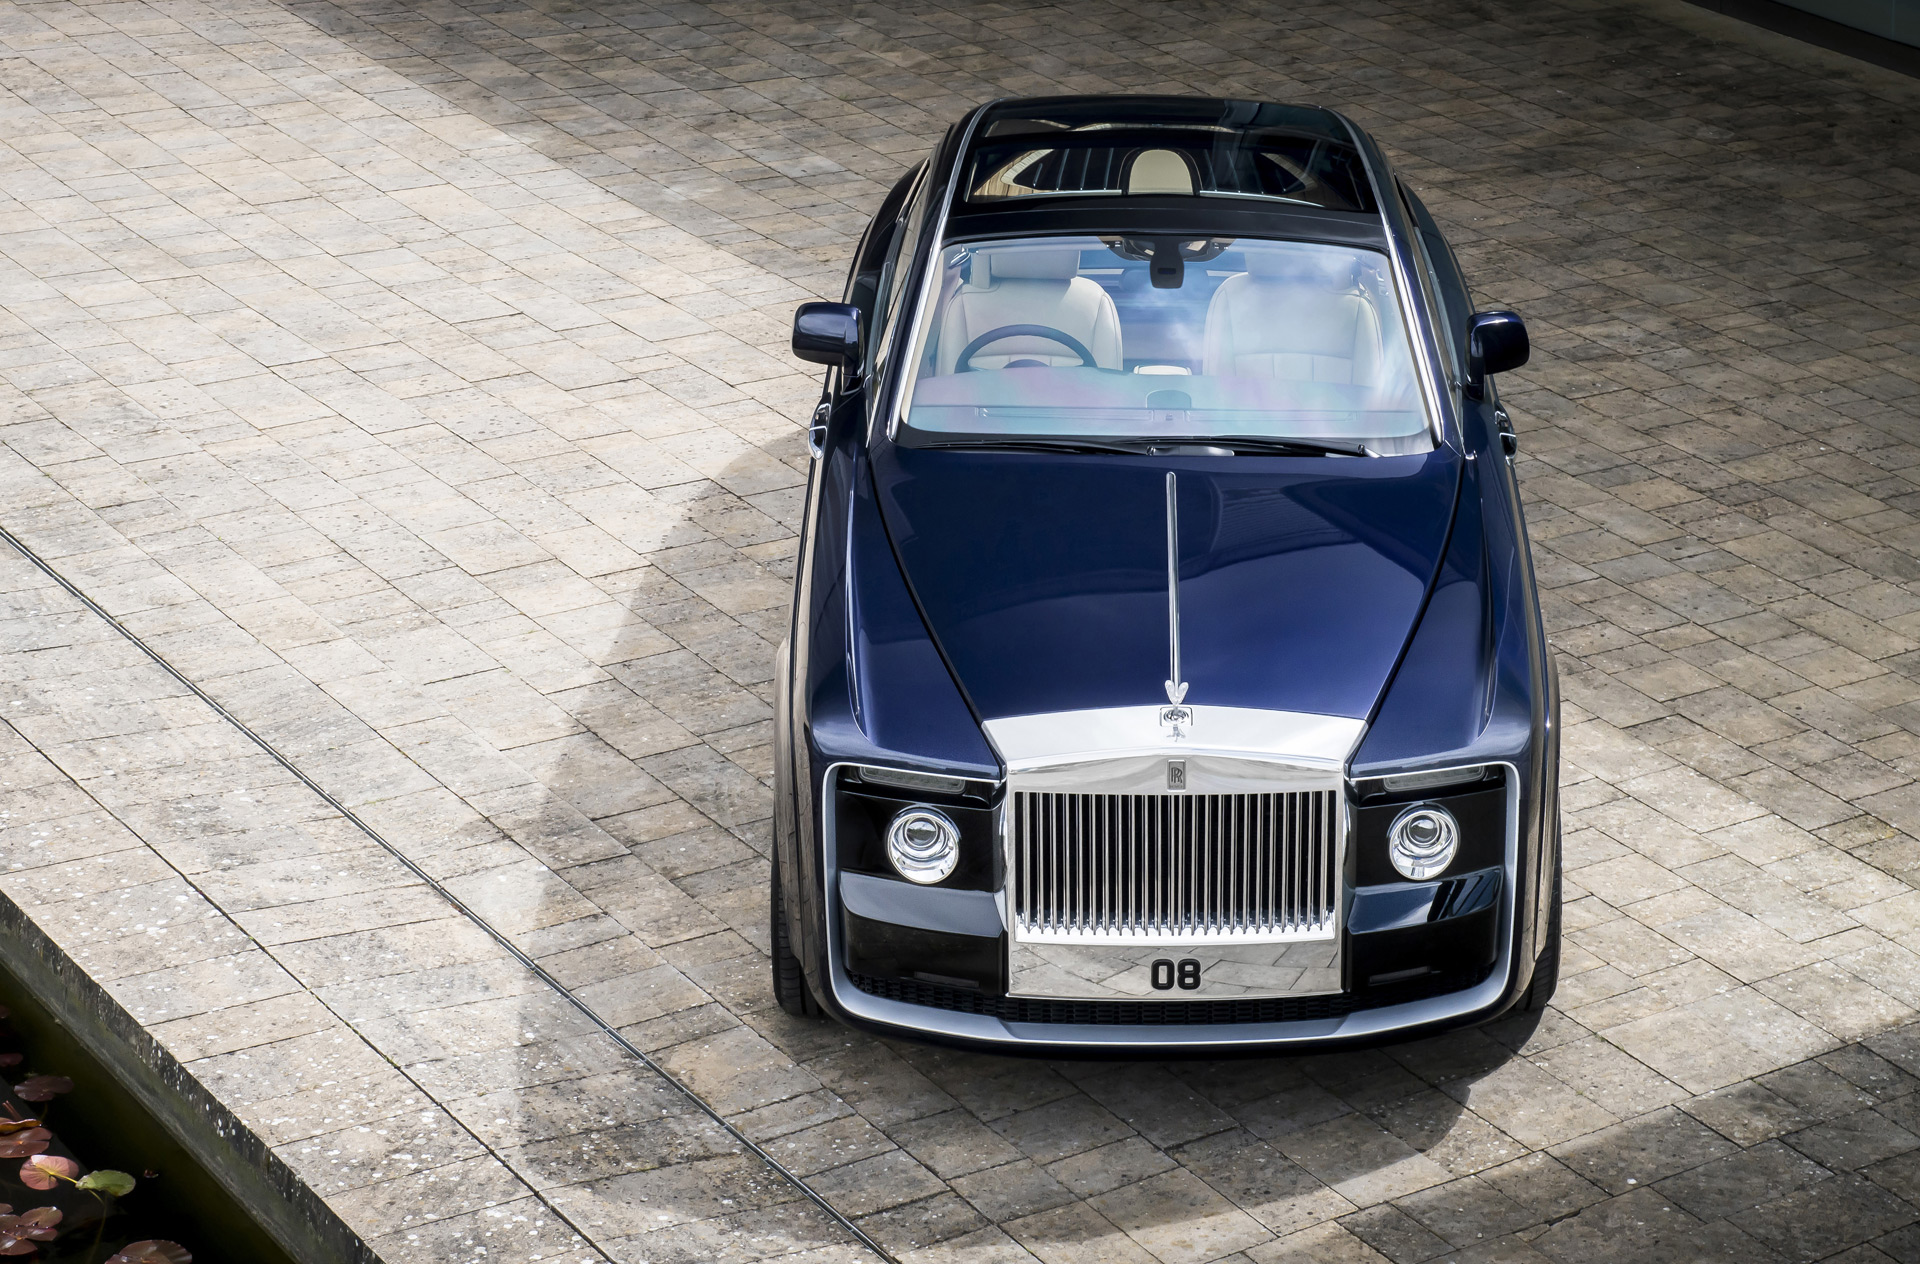 New Rolls Royce >> Rolls Royce Builds The World S Most Expensive New Car